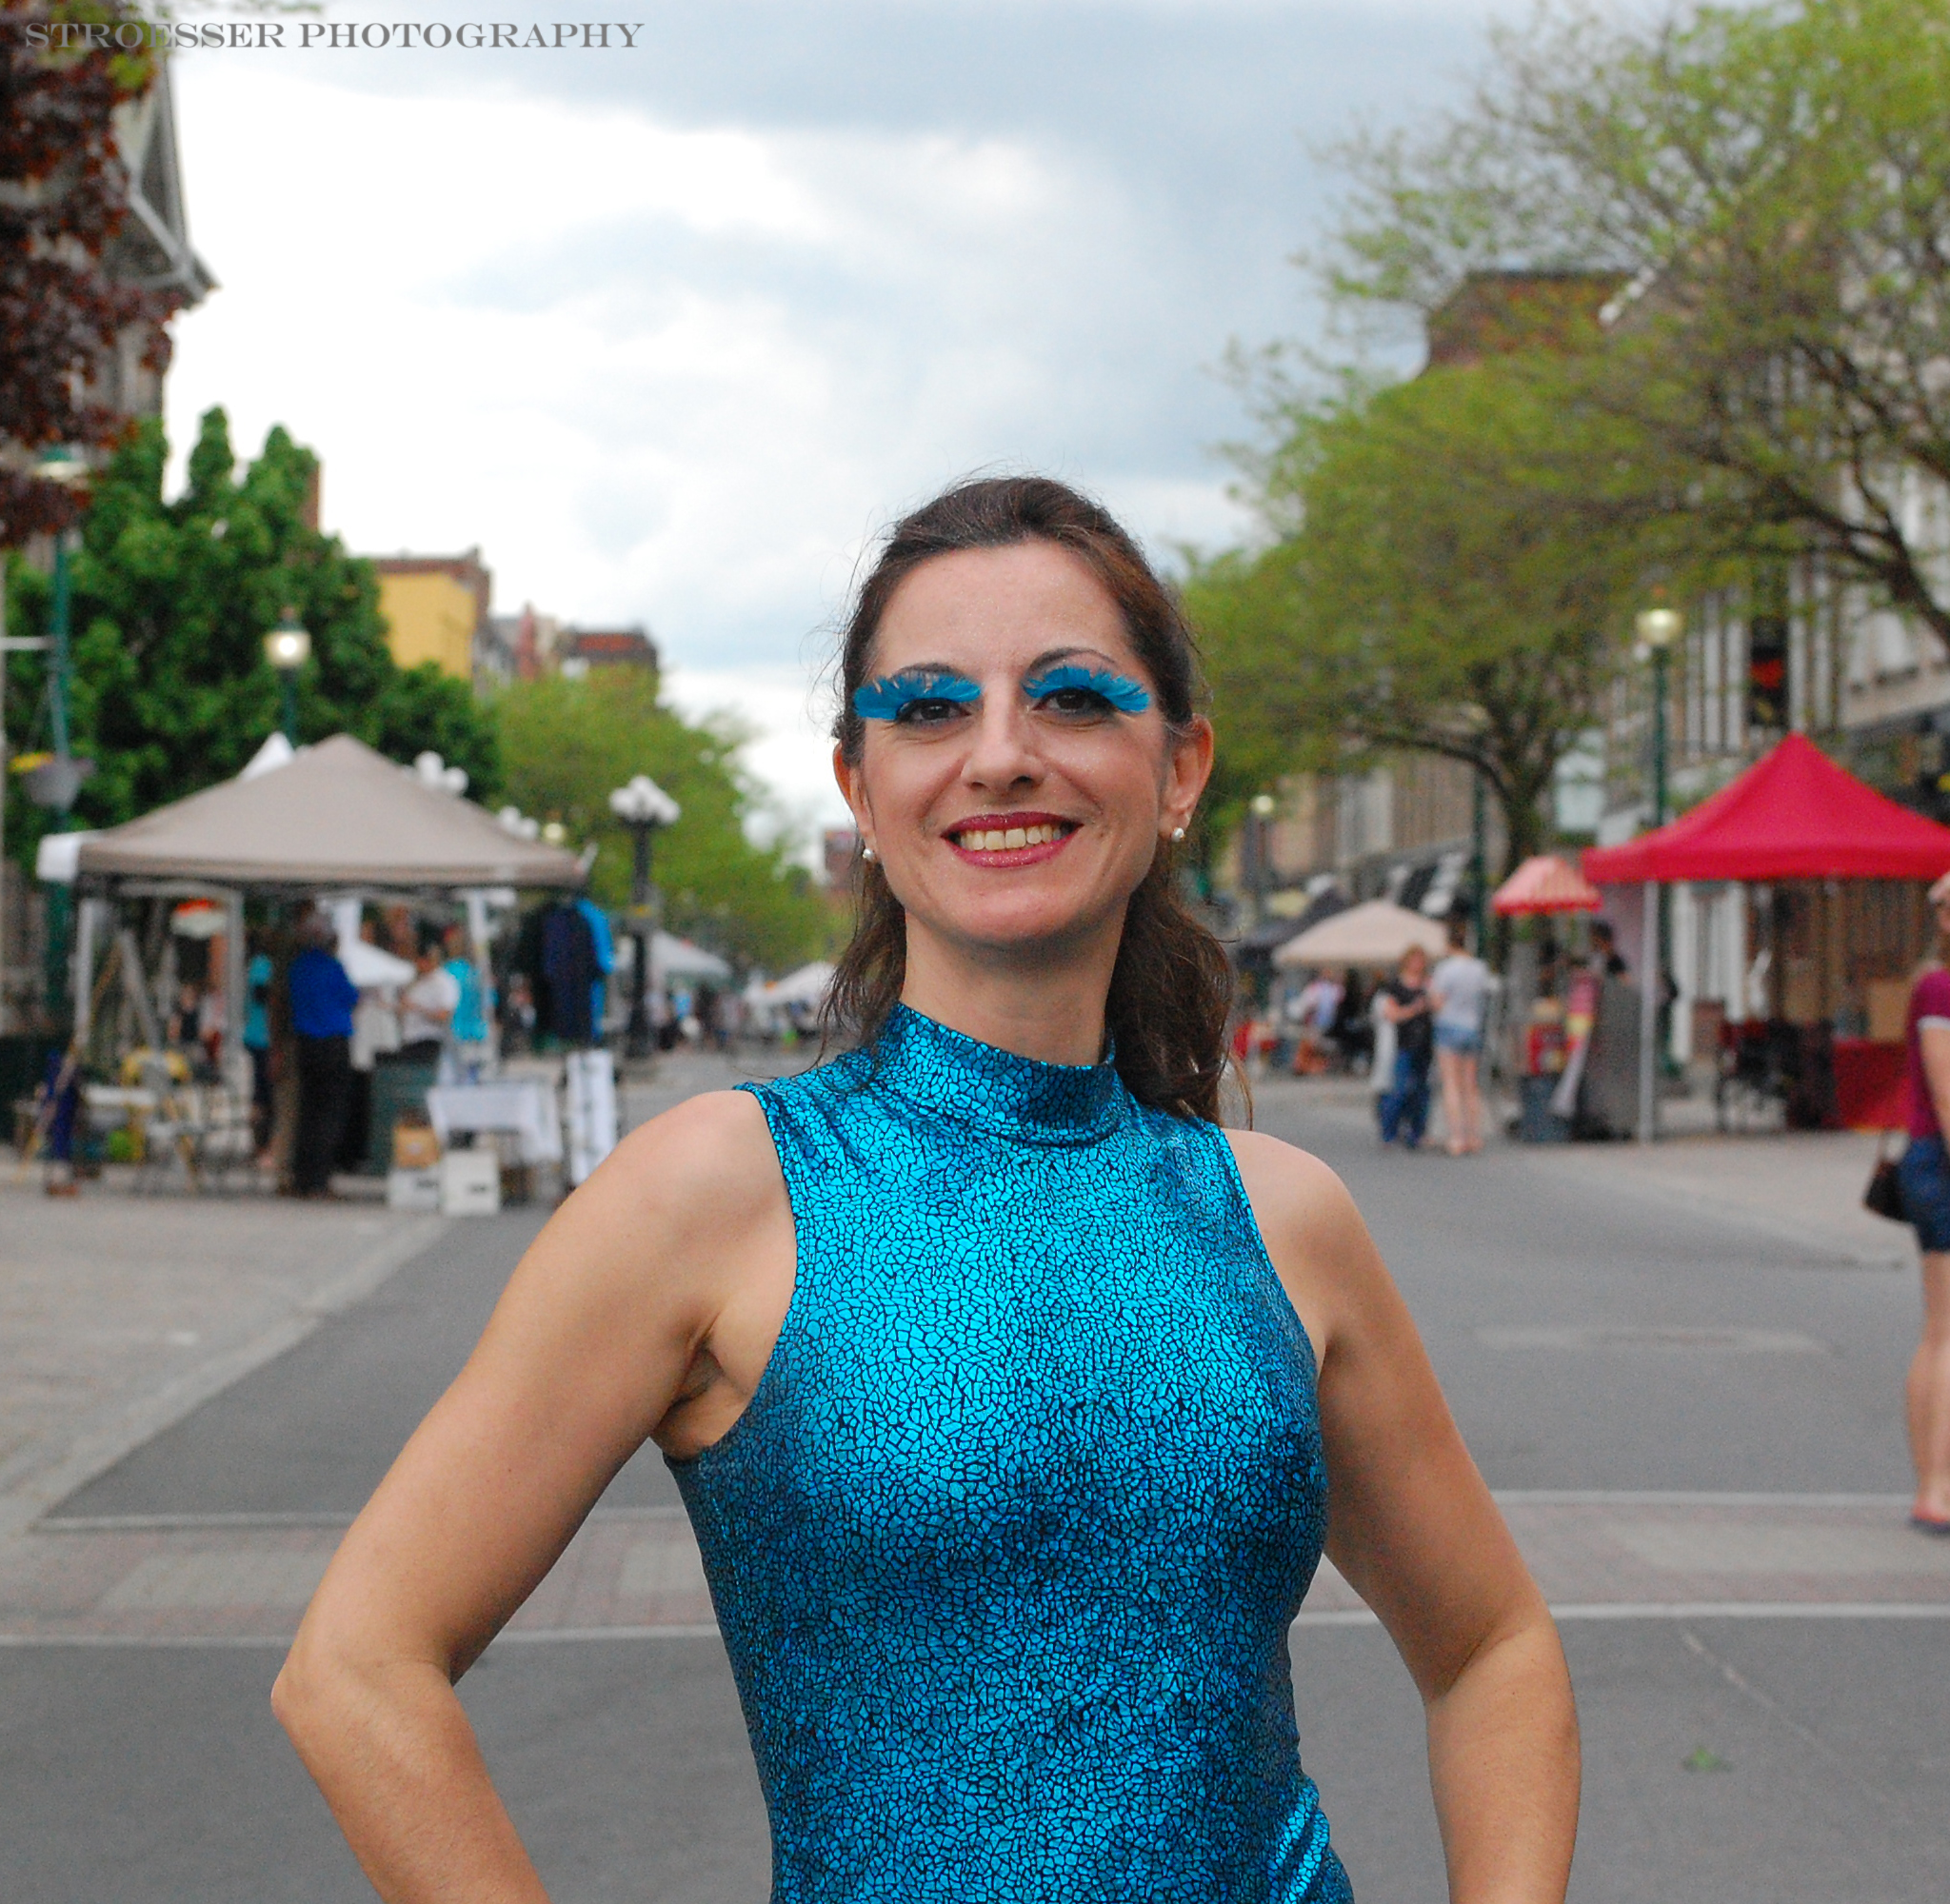 A photo of Olga from the waist up. She is wearing a teal sparkly bodysuit and matching feathery eyebrows. She has long dark hair that is pulled back and there is a street behind her with tents.